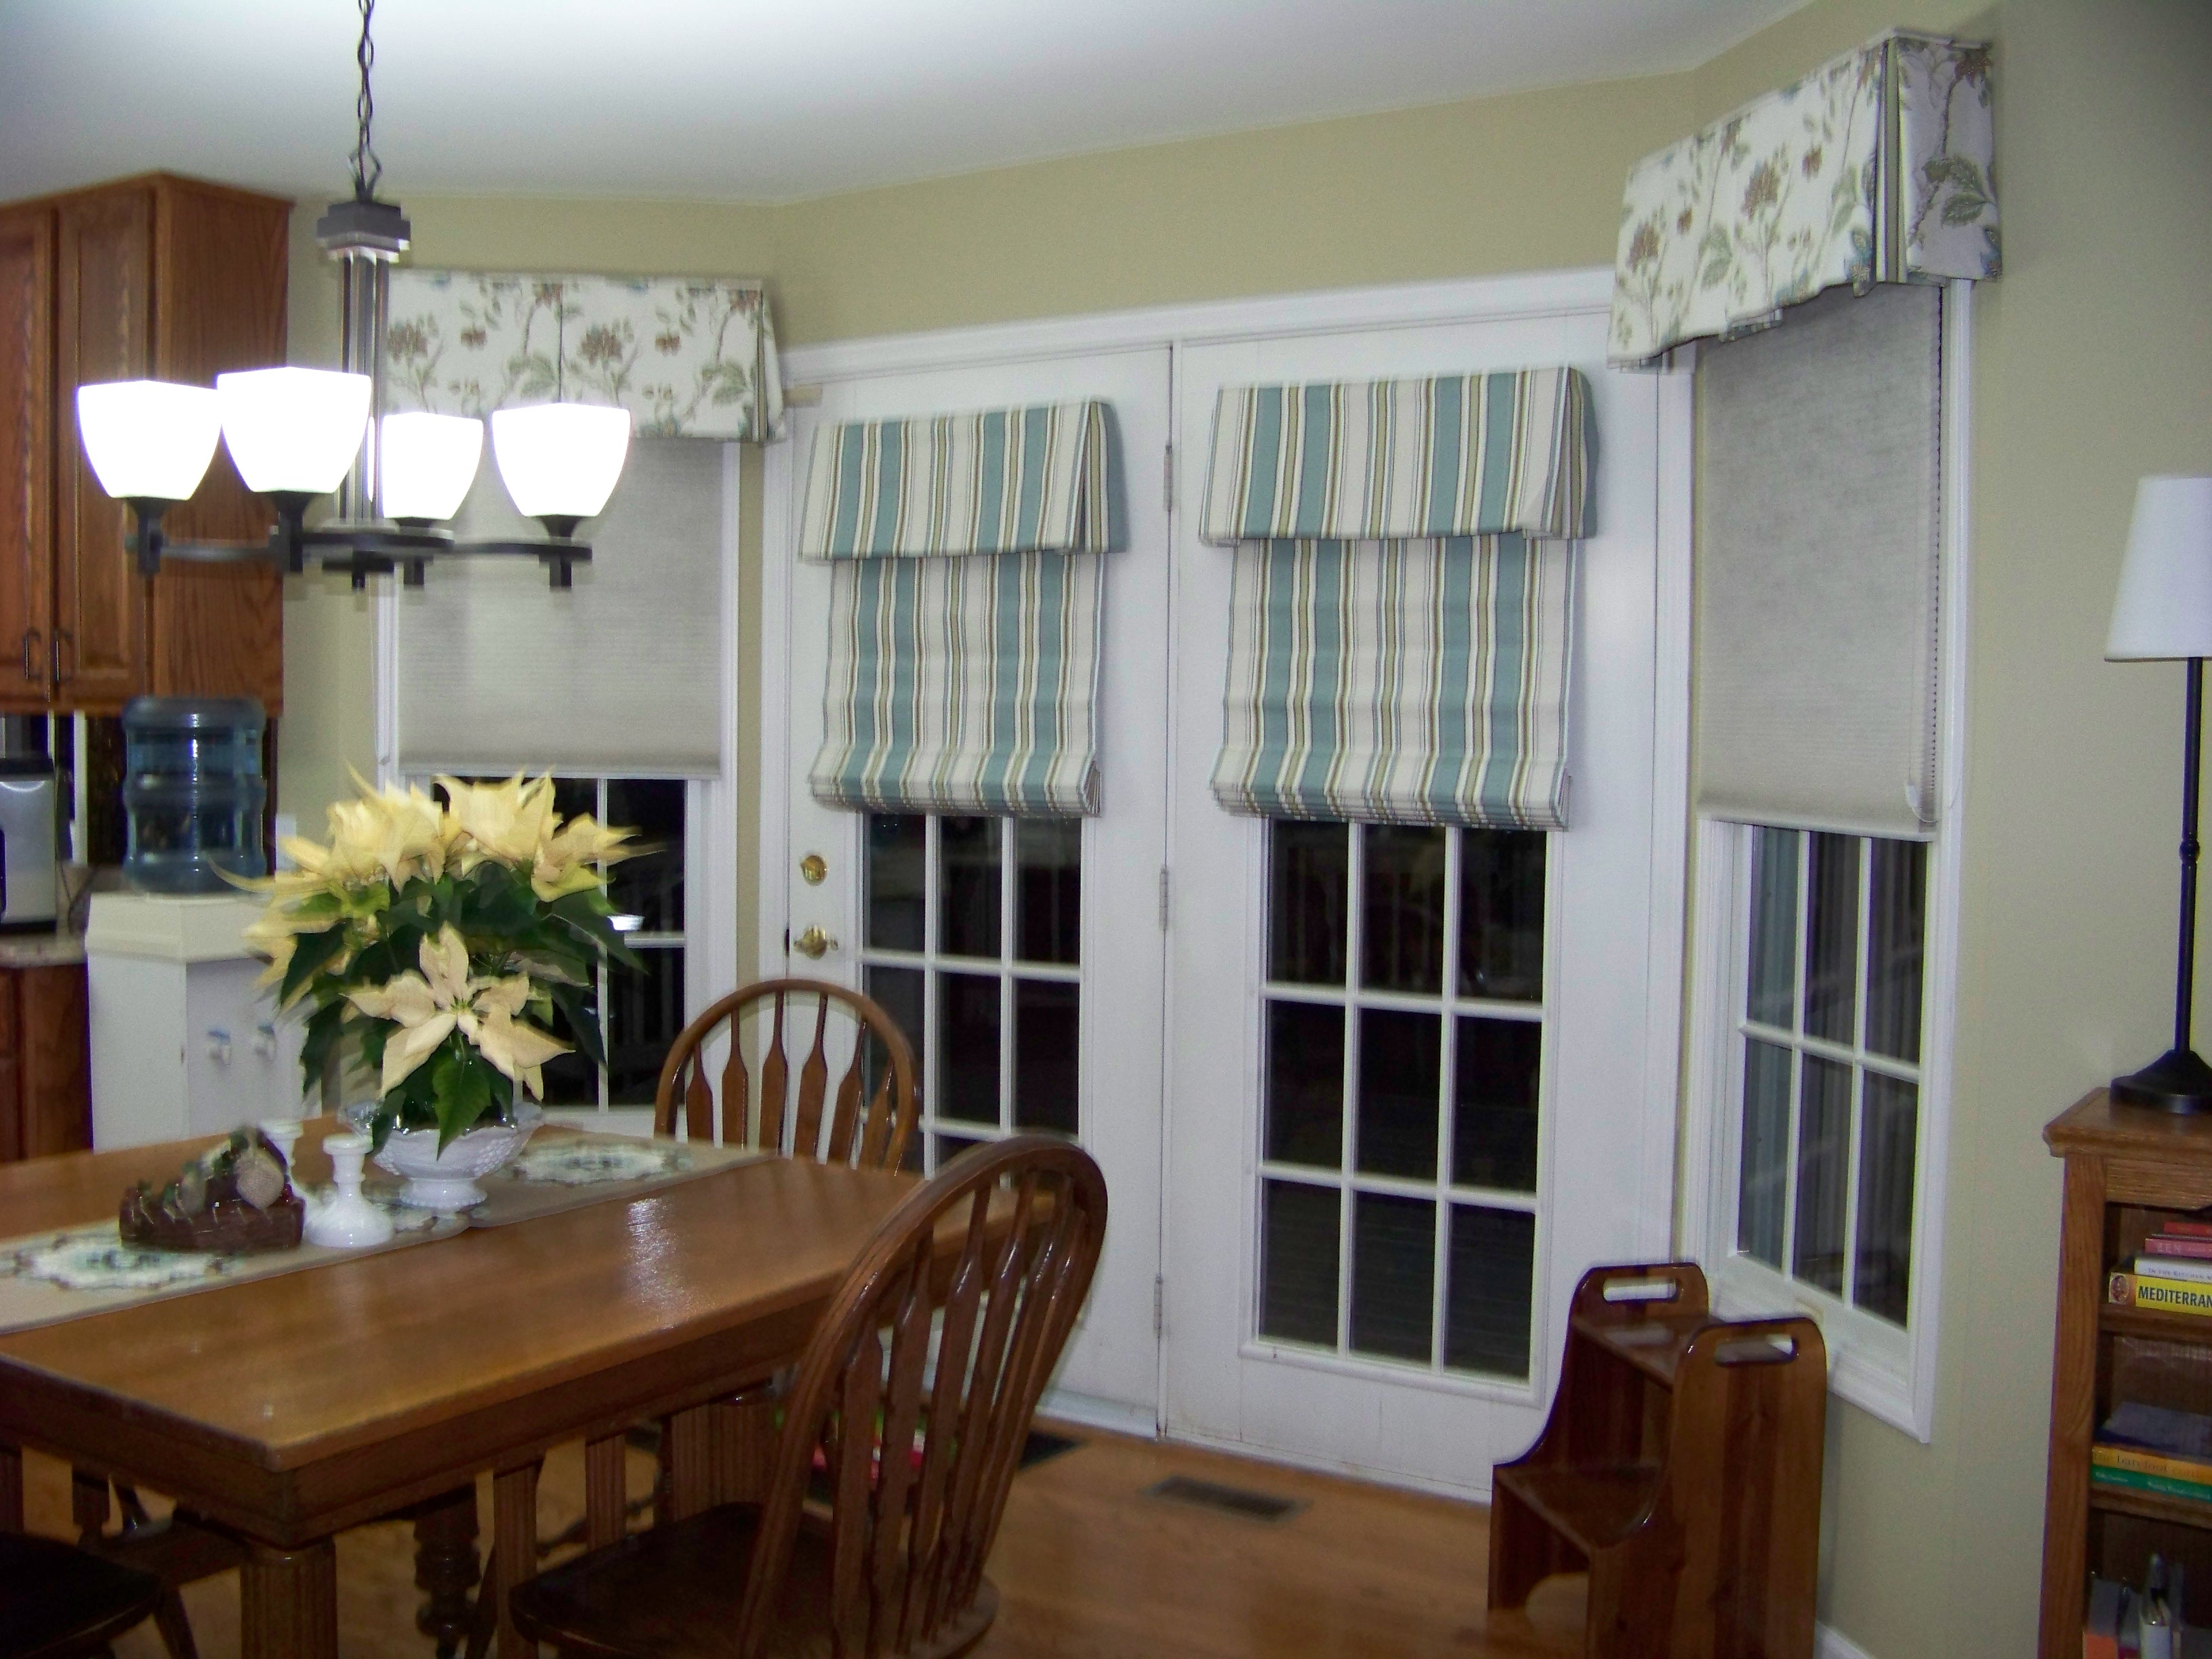 patio window treatment ideas home design ideas and pictures elegant patio window curtain ideas patio door shades ideas find this pin and more on good